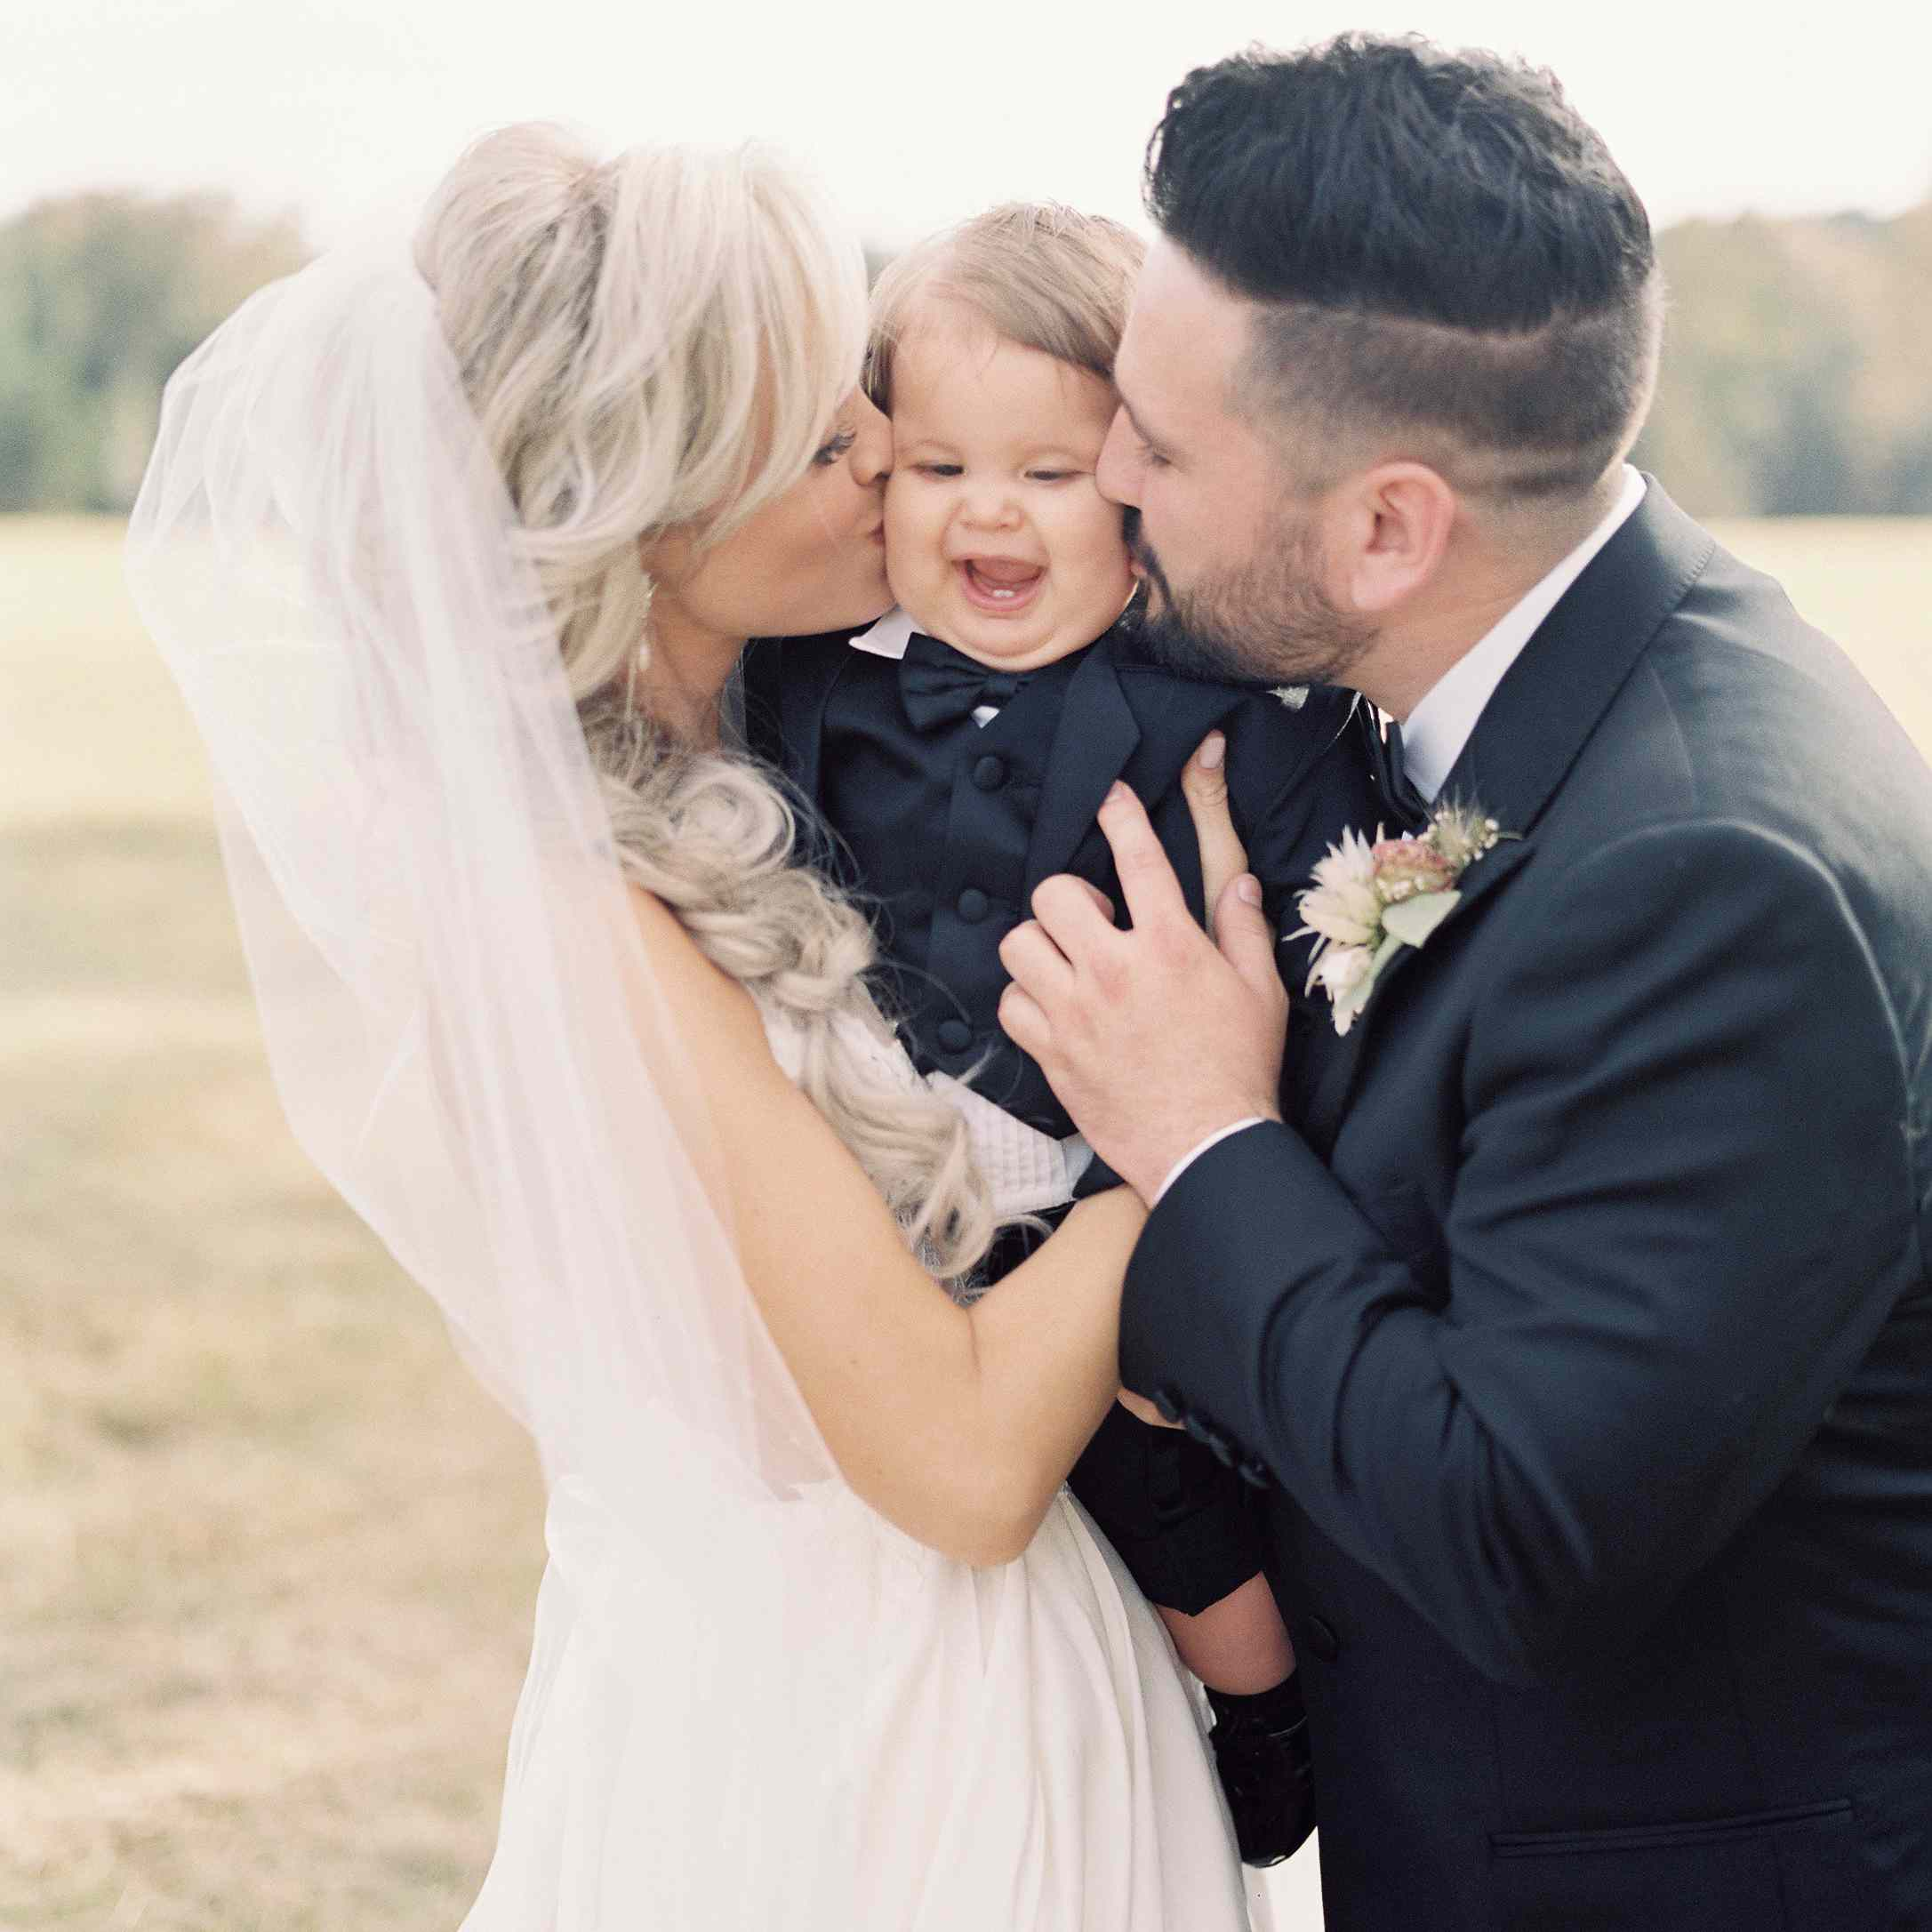 <p>Bride and groom kissing baby</p><br><br>